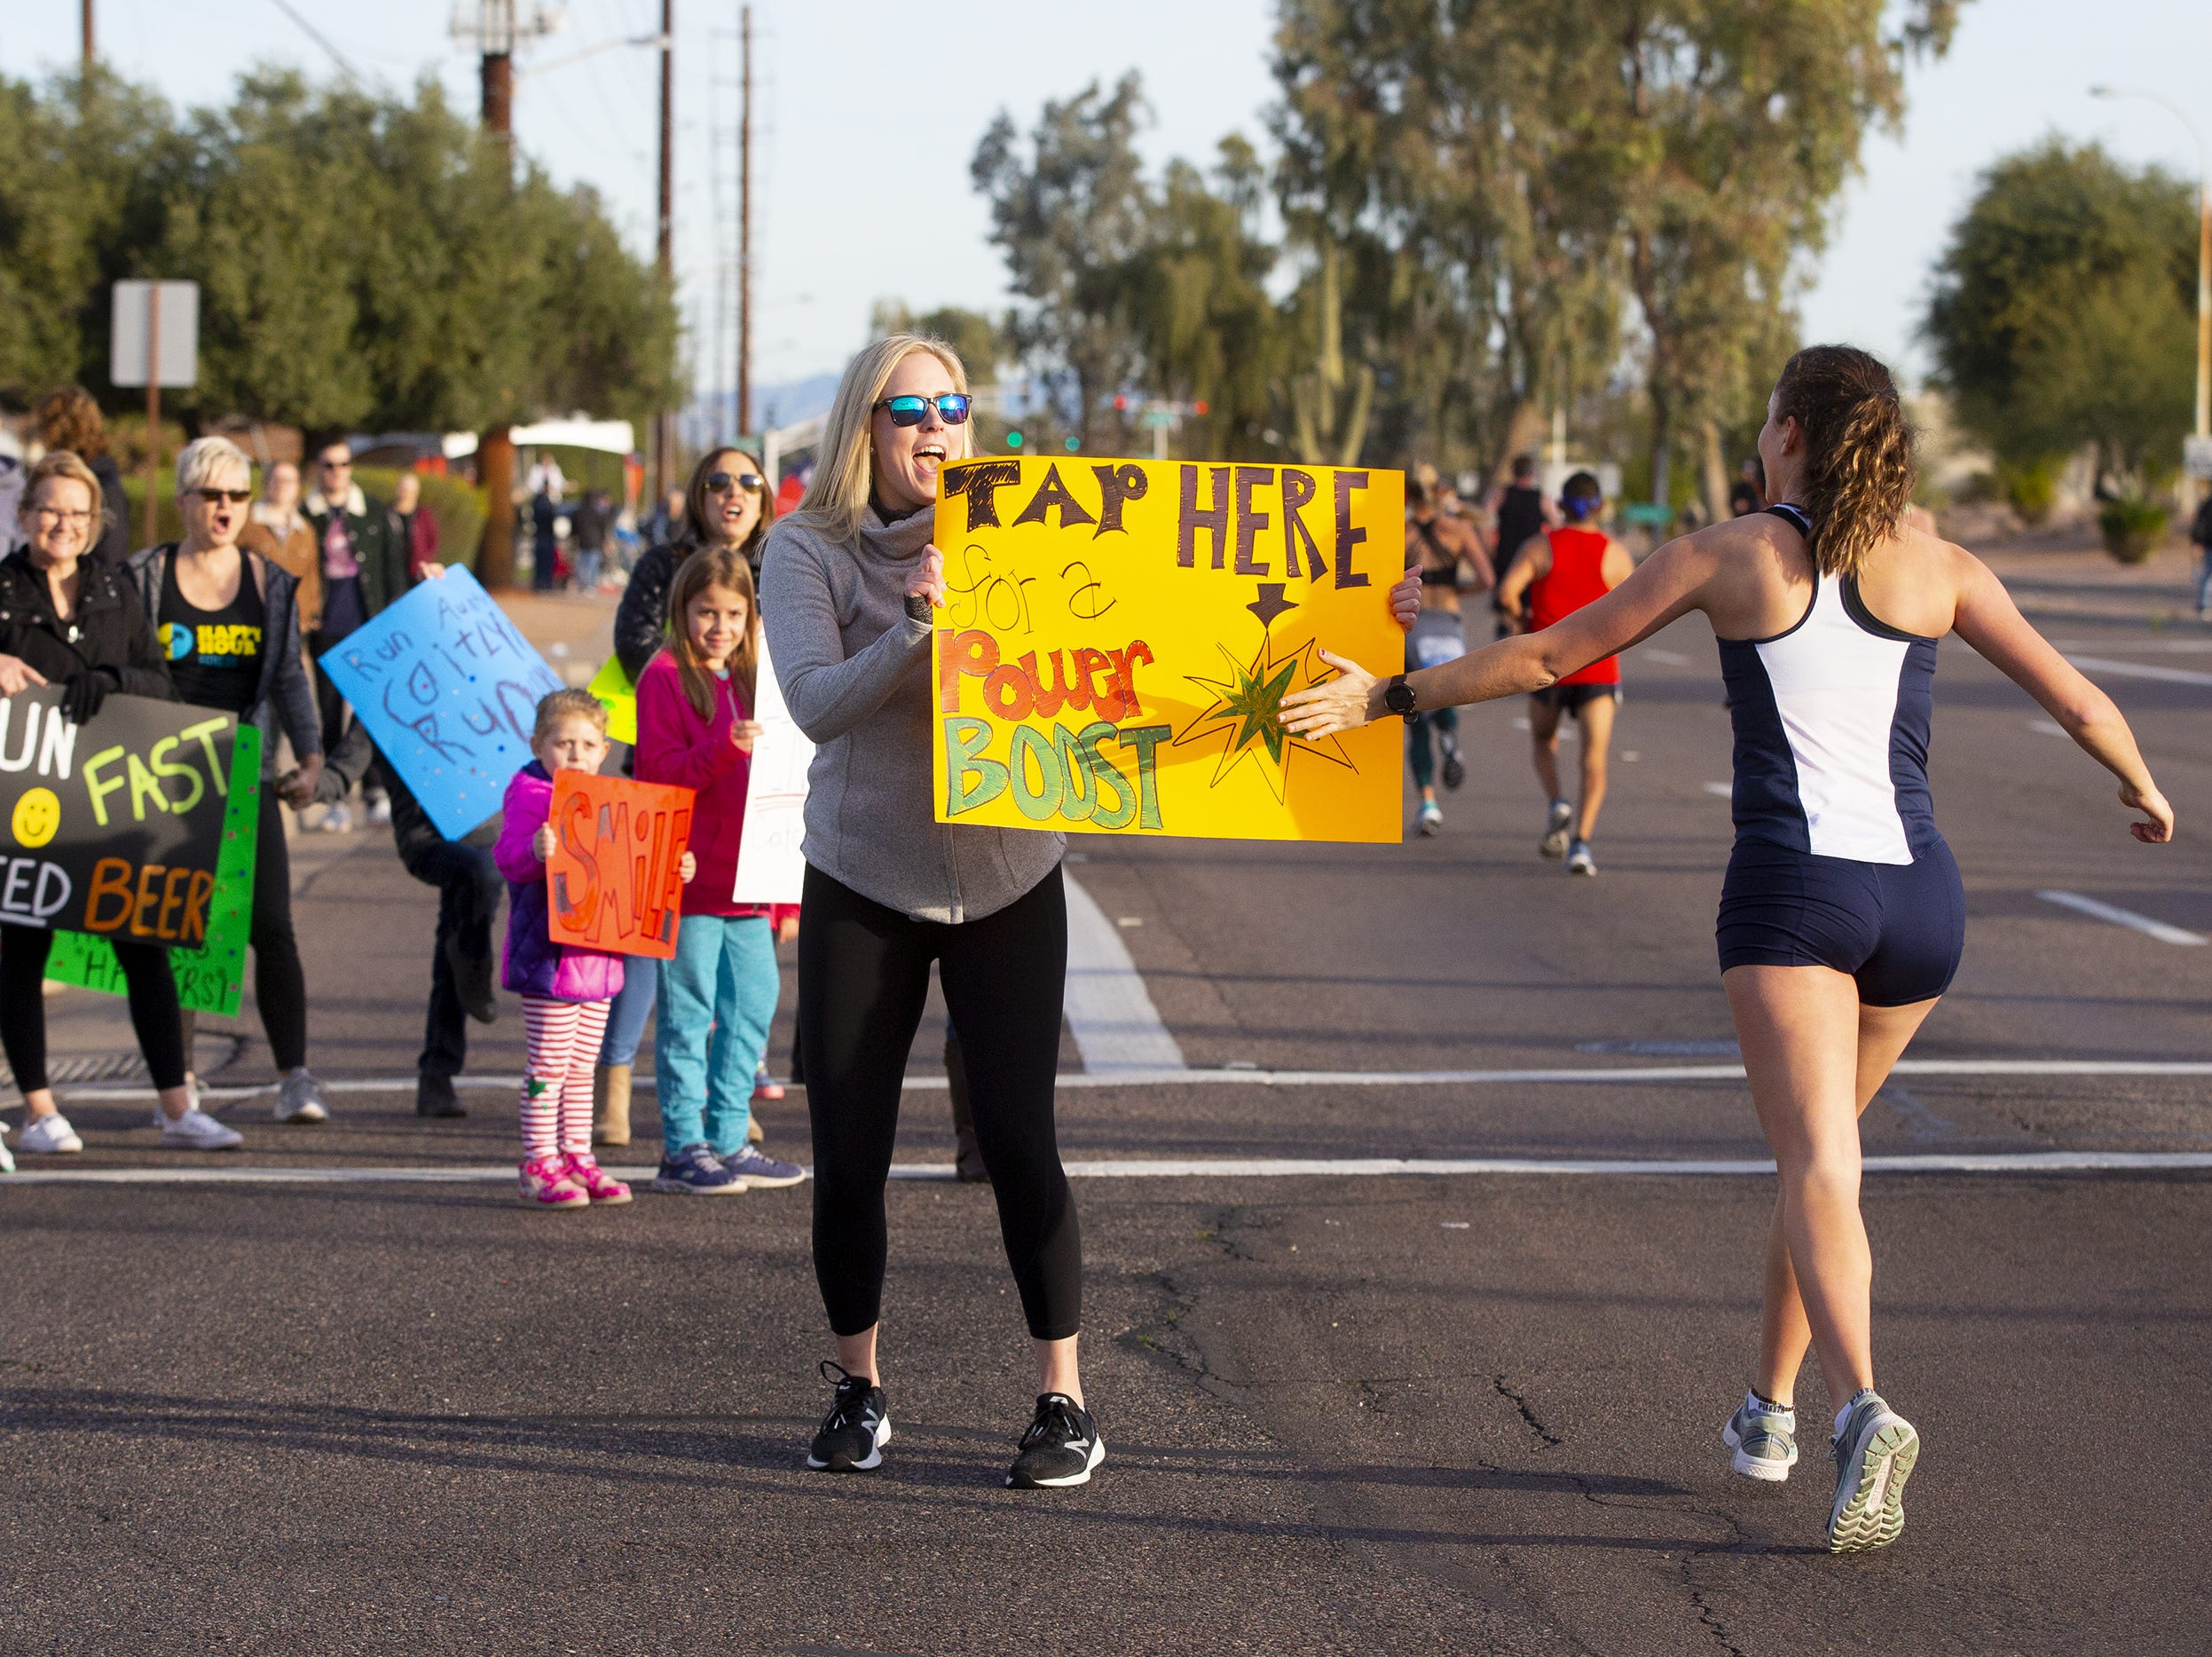 Shelby Mobley of Chandler offers the runners a boost during the Humana Rock 'N' Roll half marathon on Jan. 20, 2019.